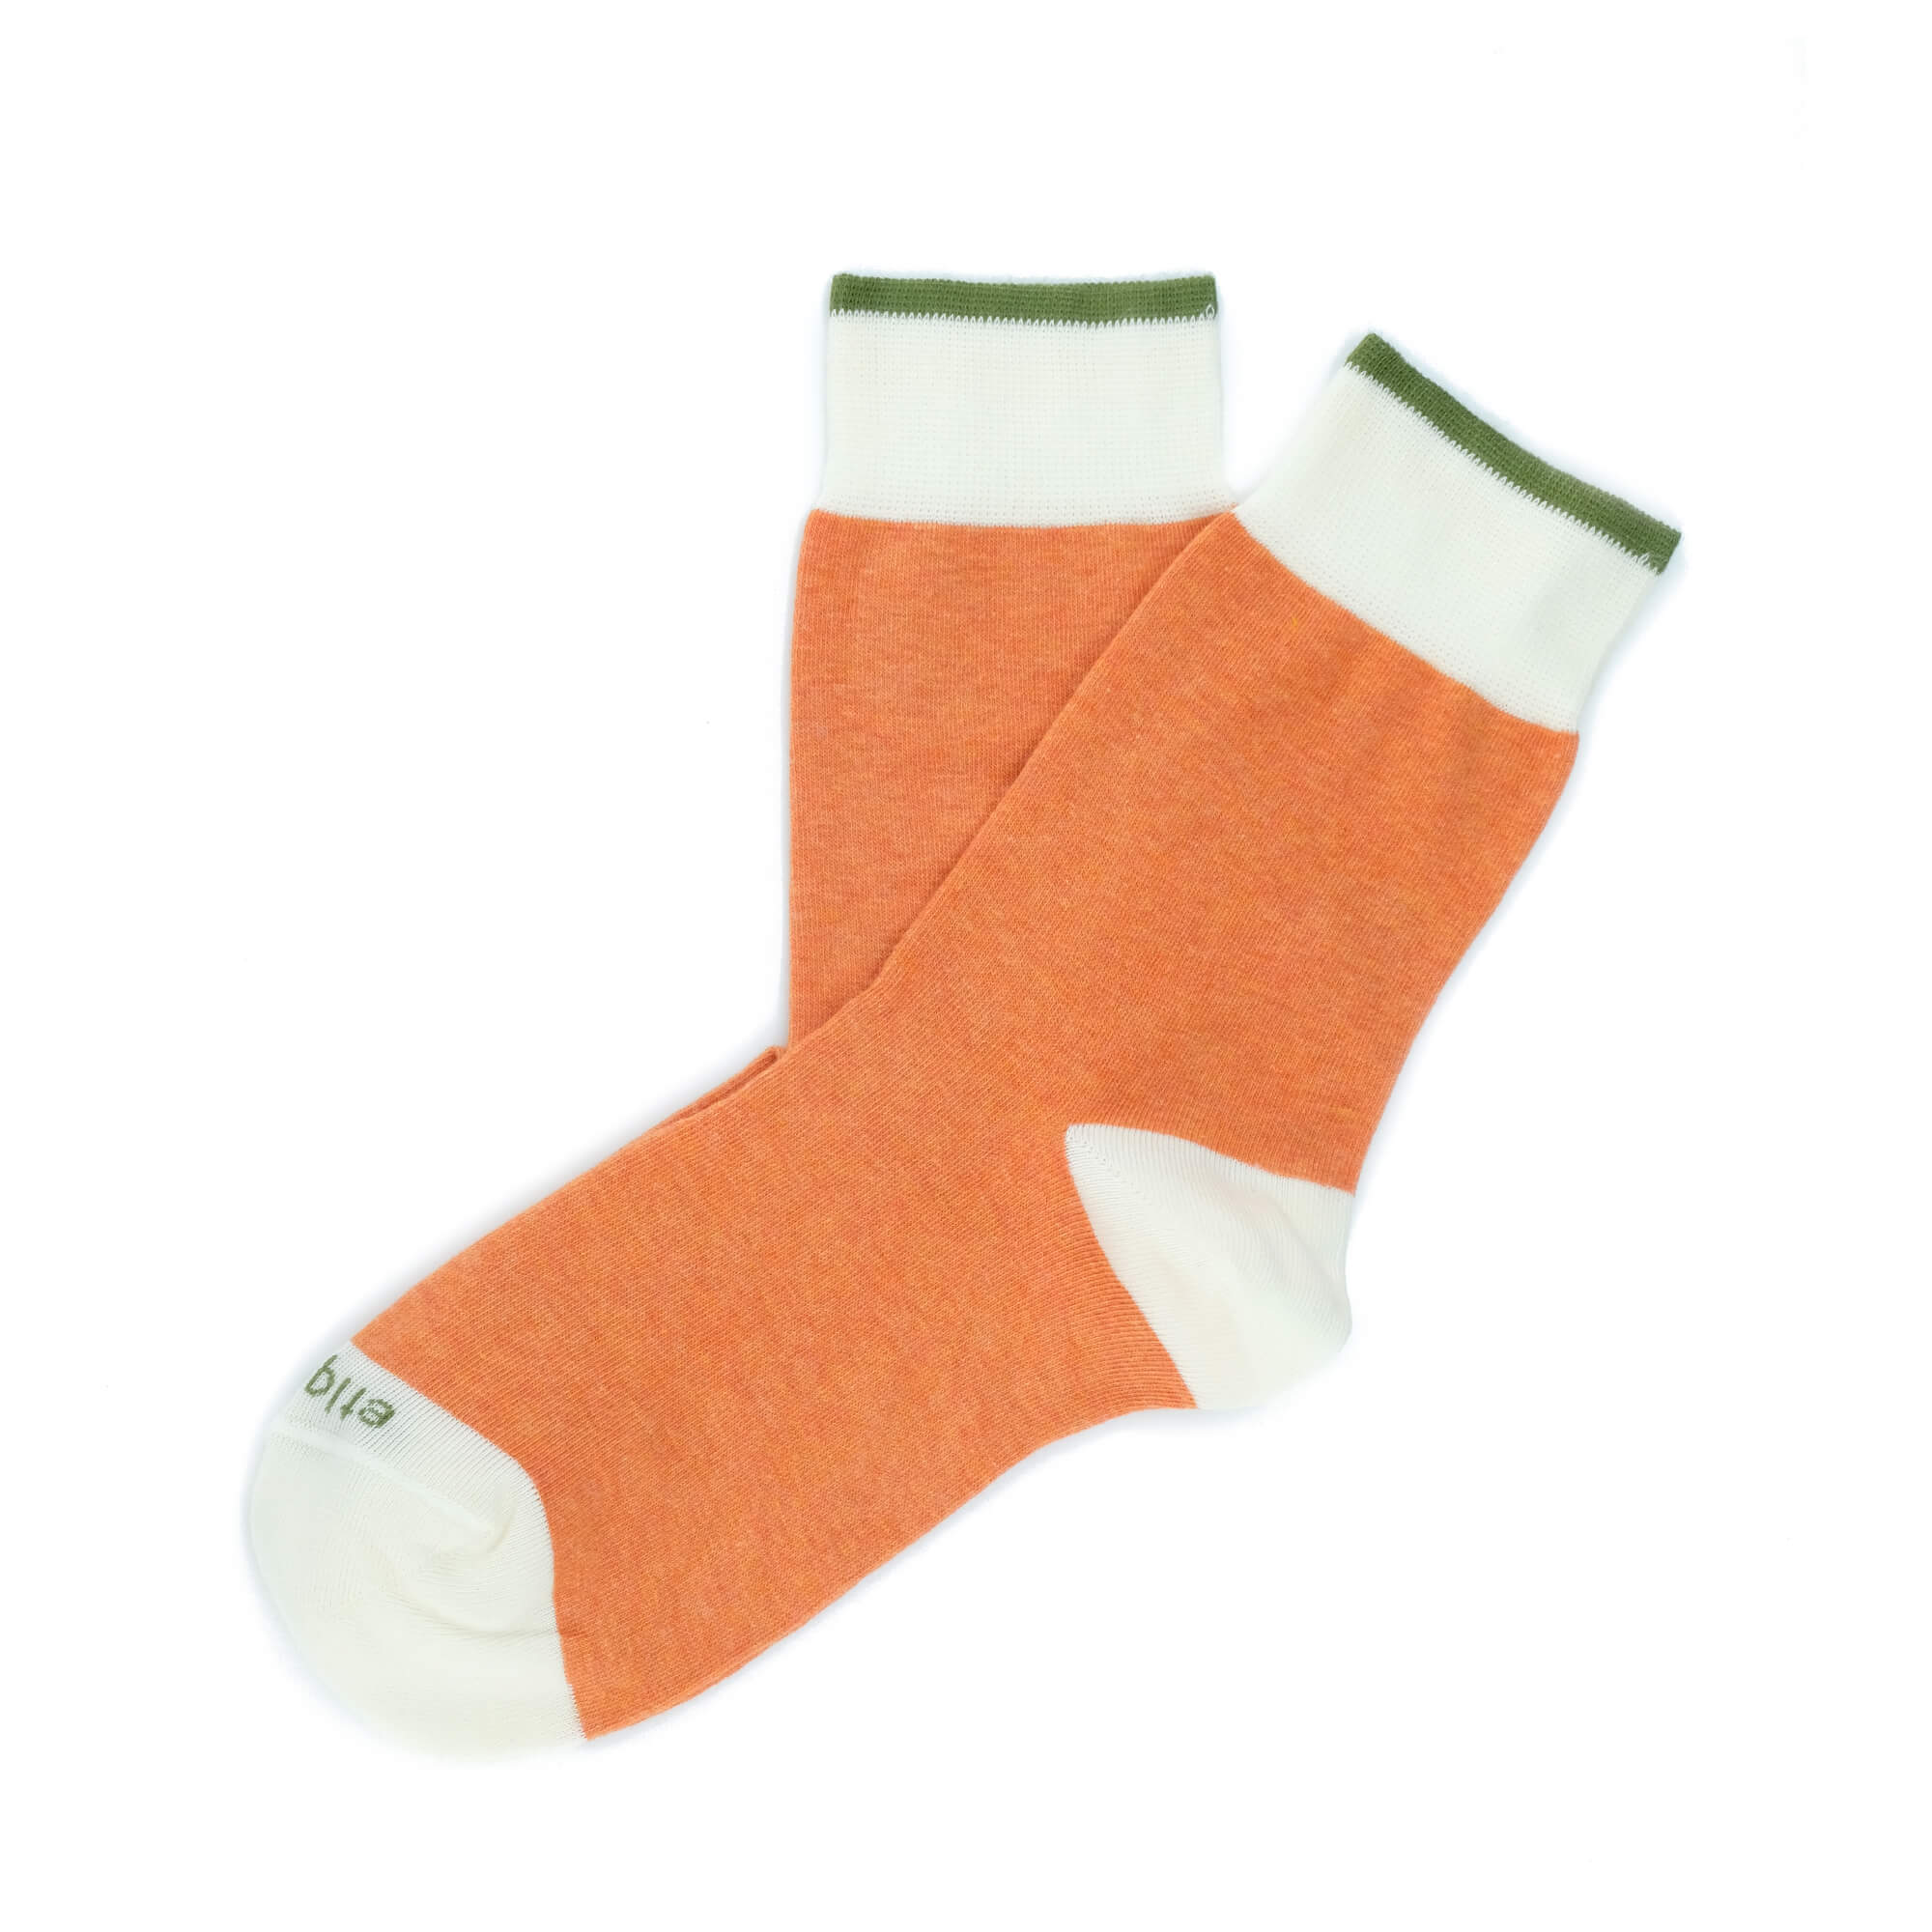 Womens Socks - Tri Pop Women's Socks - Orange⎪Etiquette Clothiers